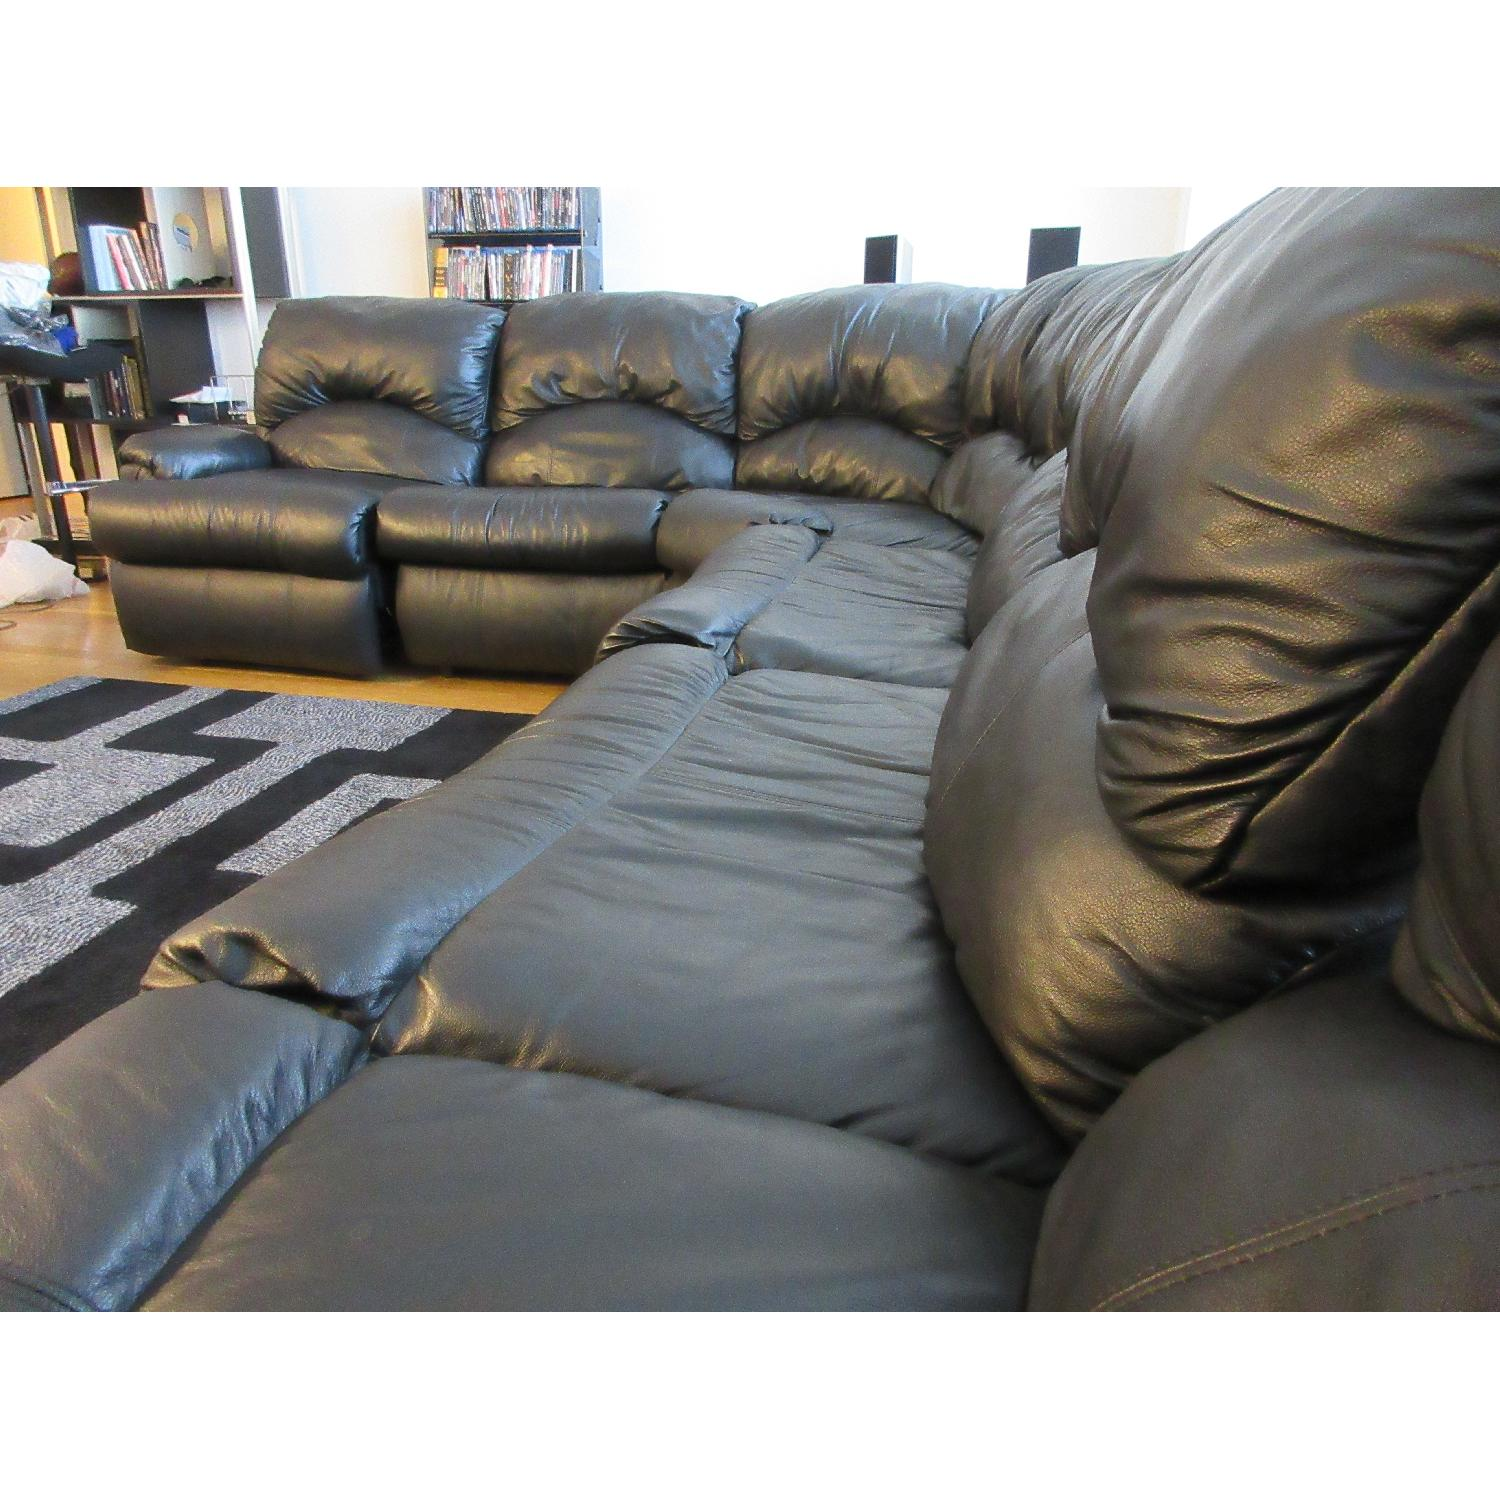 Klaussner Phoenix Sectional w/ Recliners & Fold Out Bed - image-8